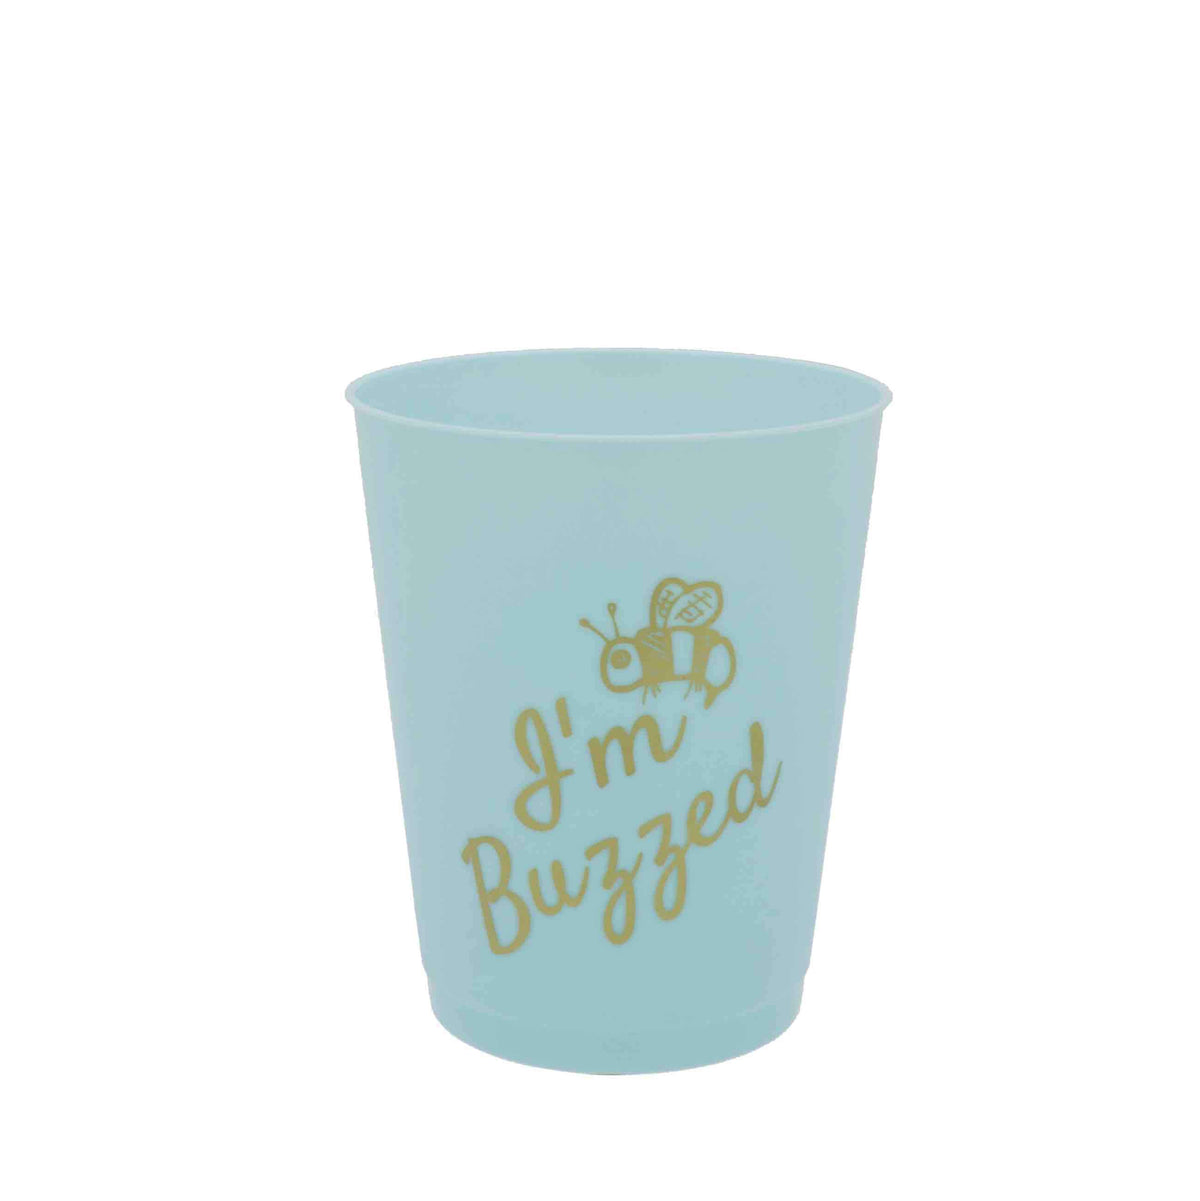 Sip Sip Hooray Stacked Party Cup Set- I'm Buzzed